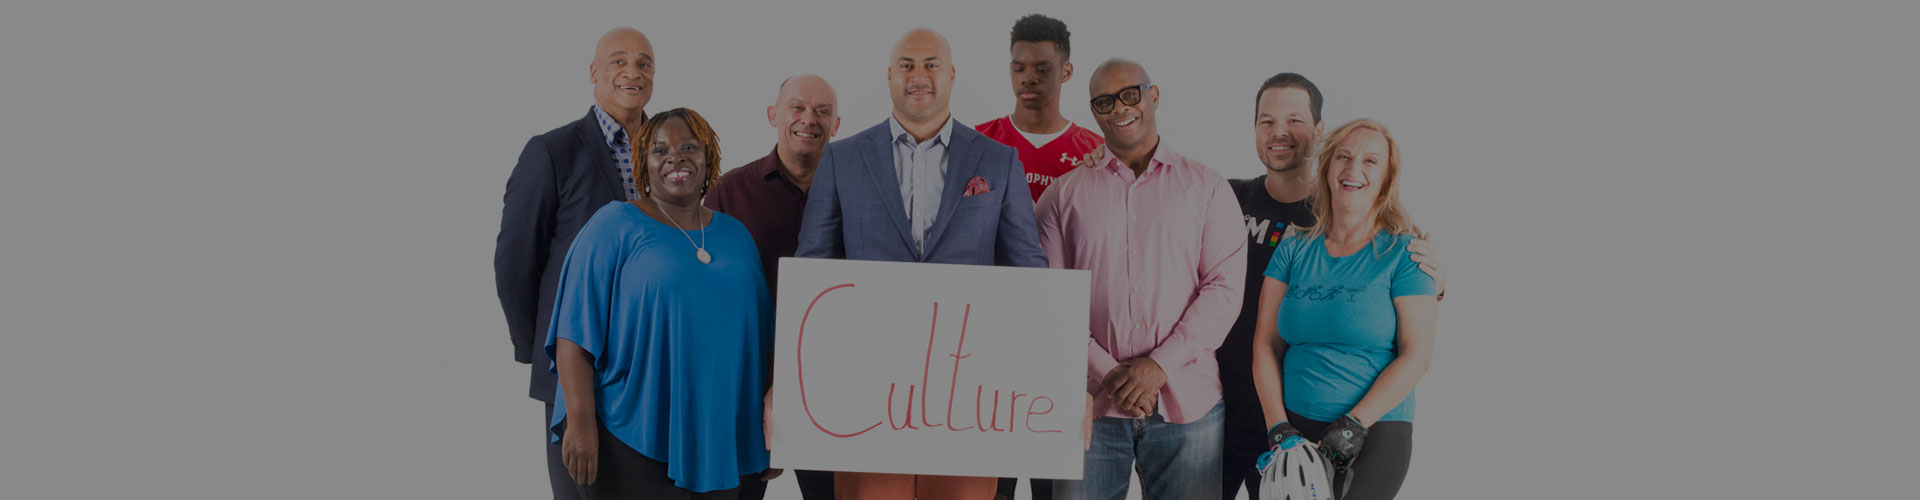 Diversity Leadership Alliance Team - Culture Sign